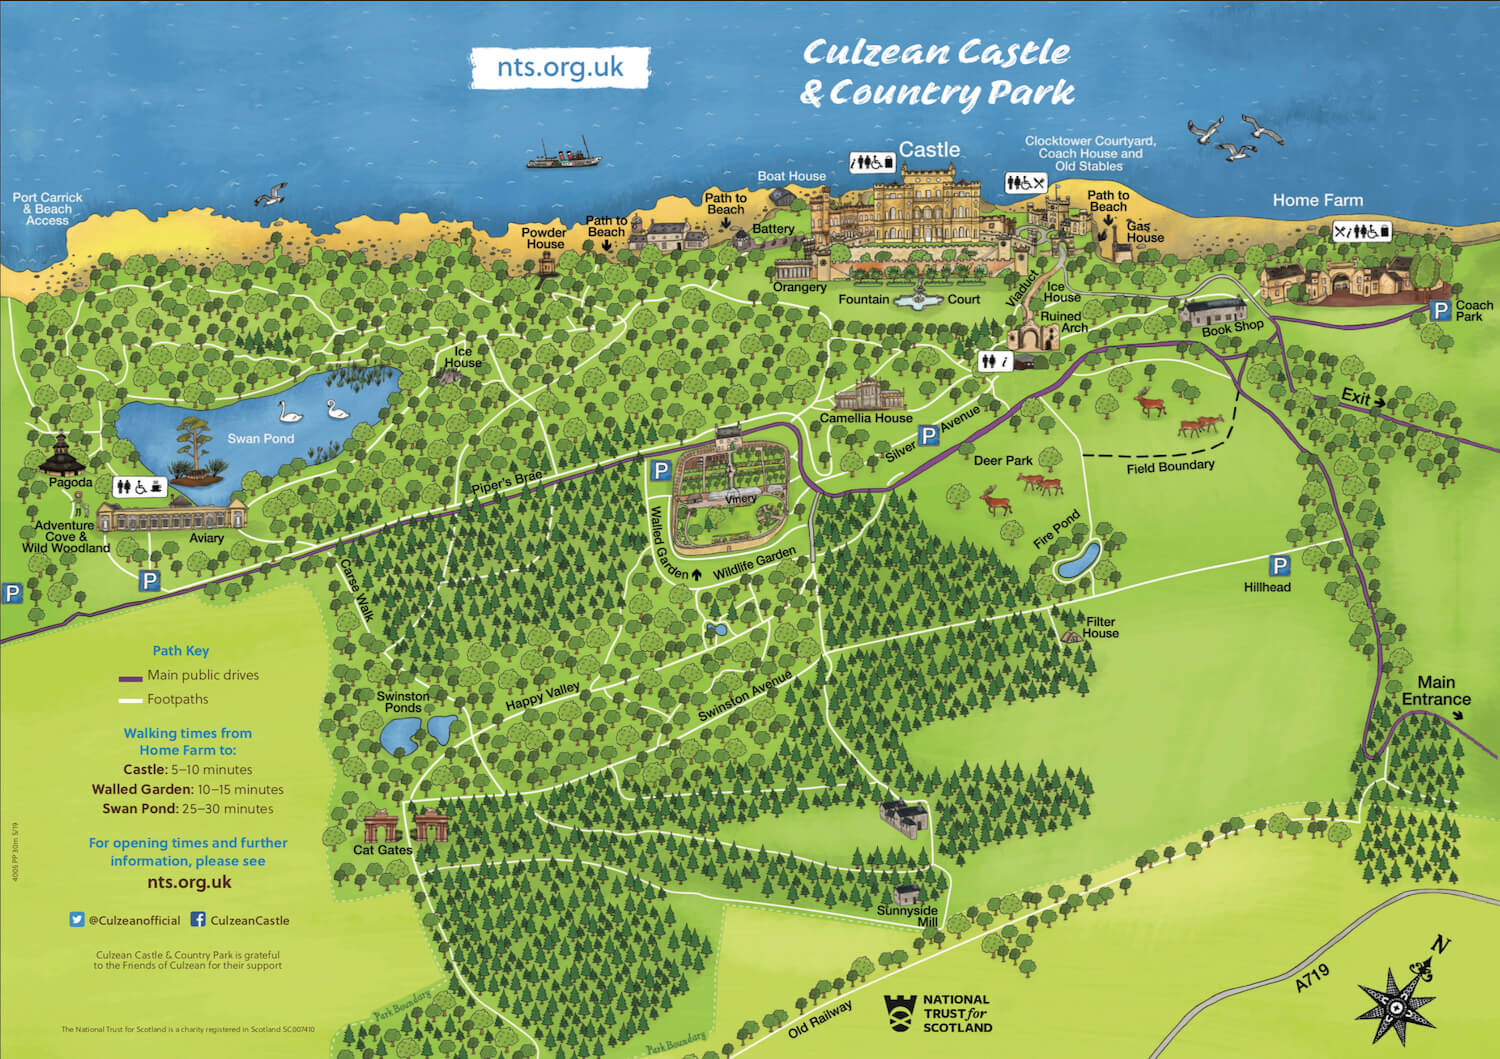 Culzean Castle and Country Park - Grounds Map - Visitors Guide